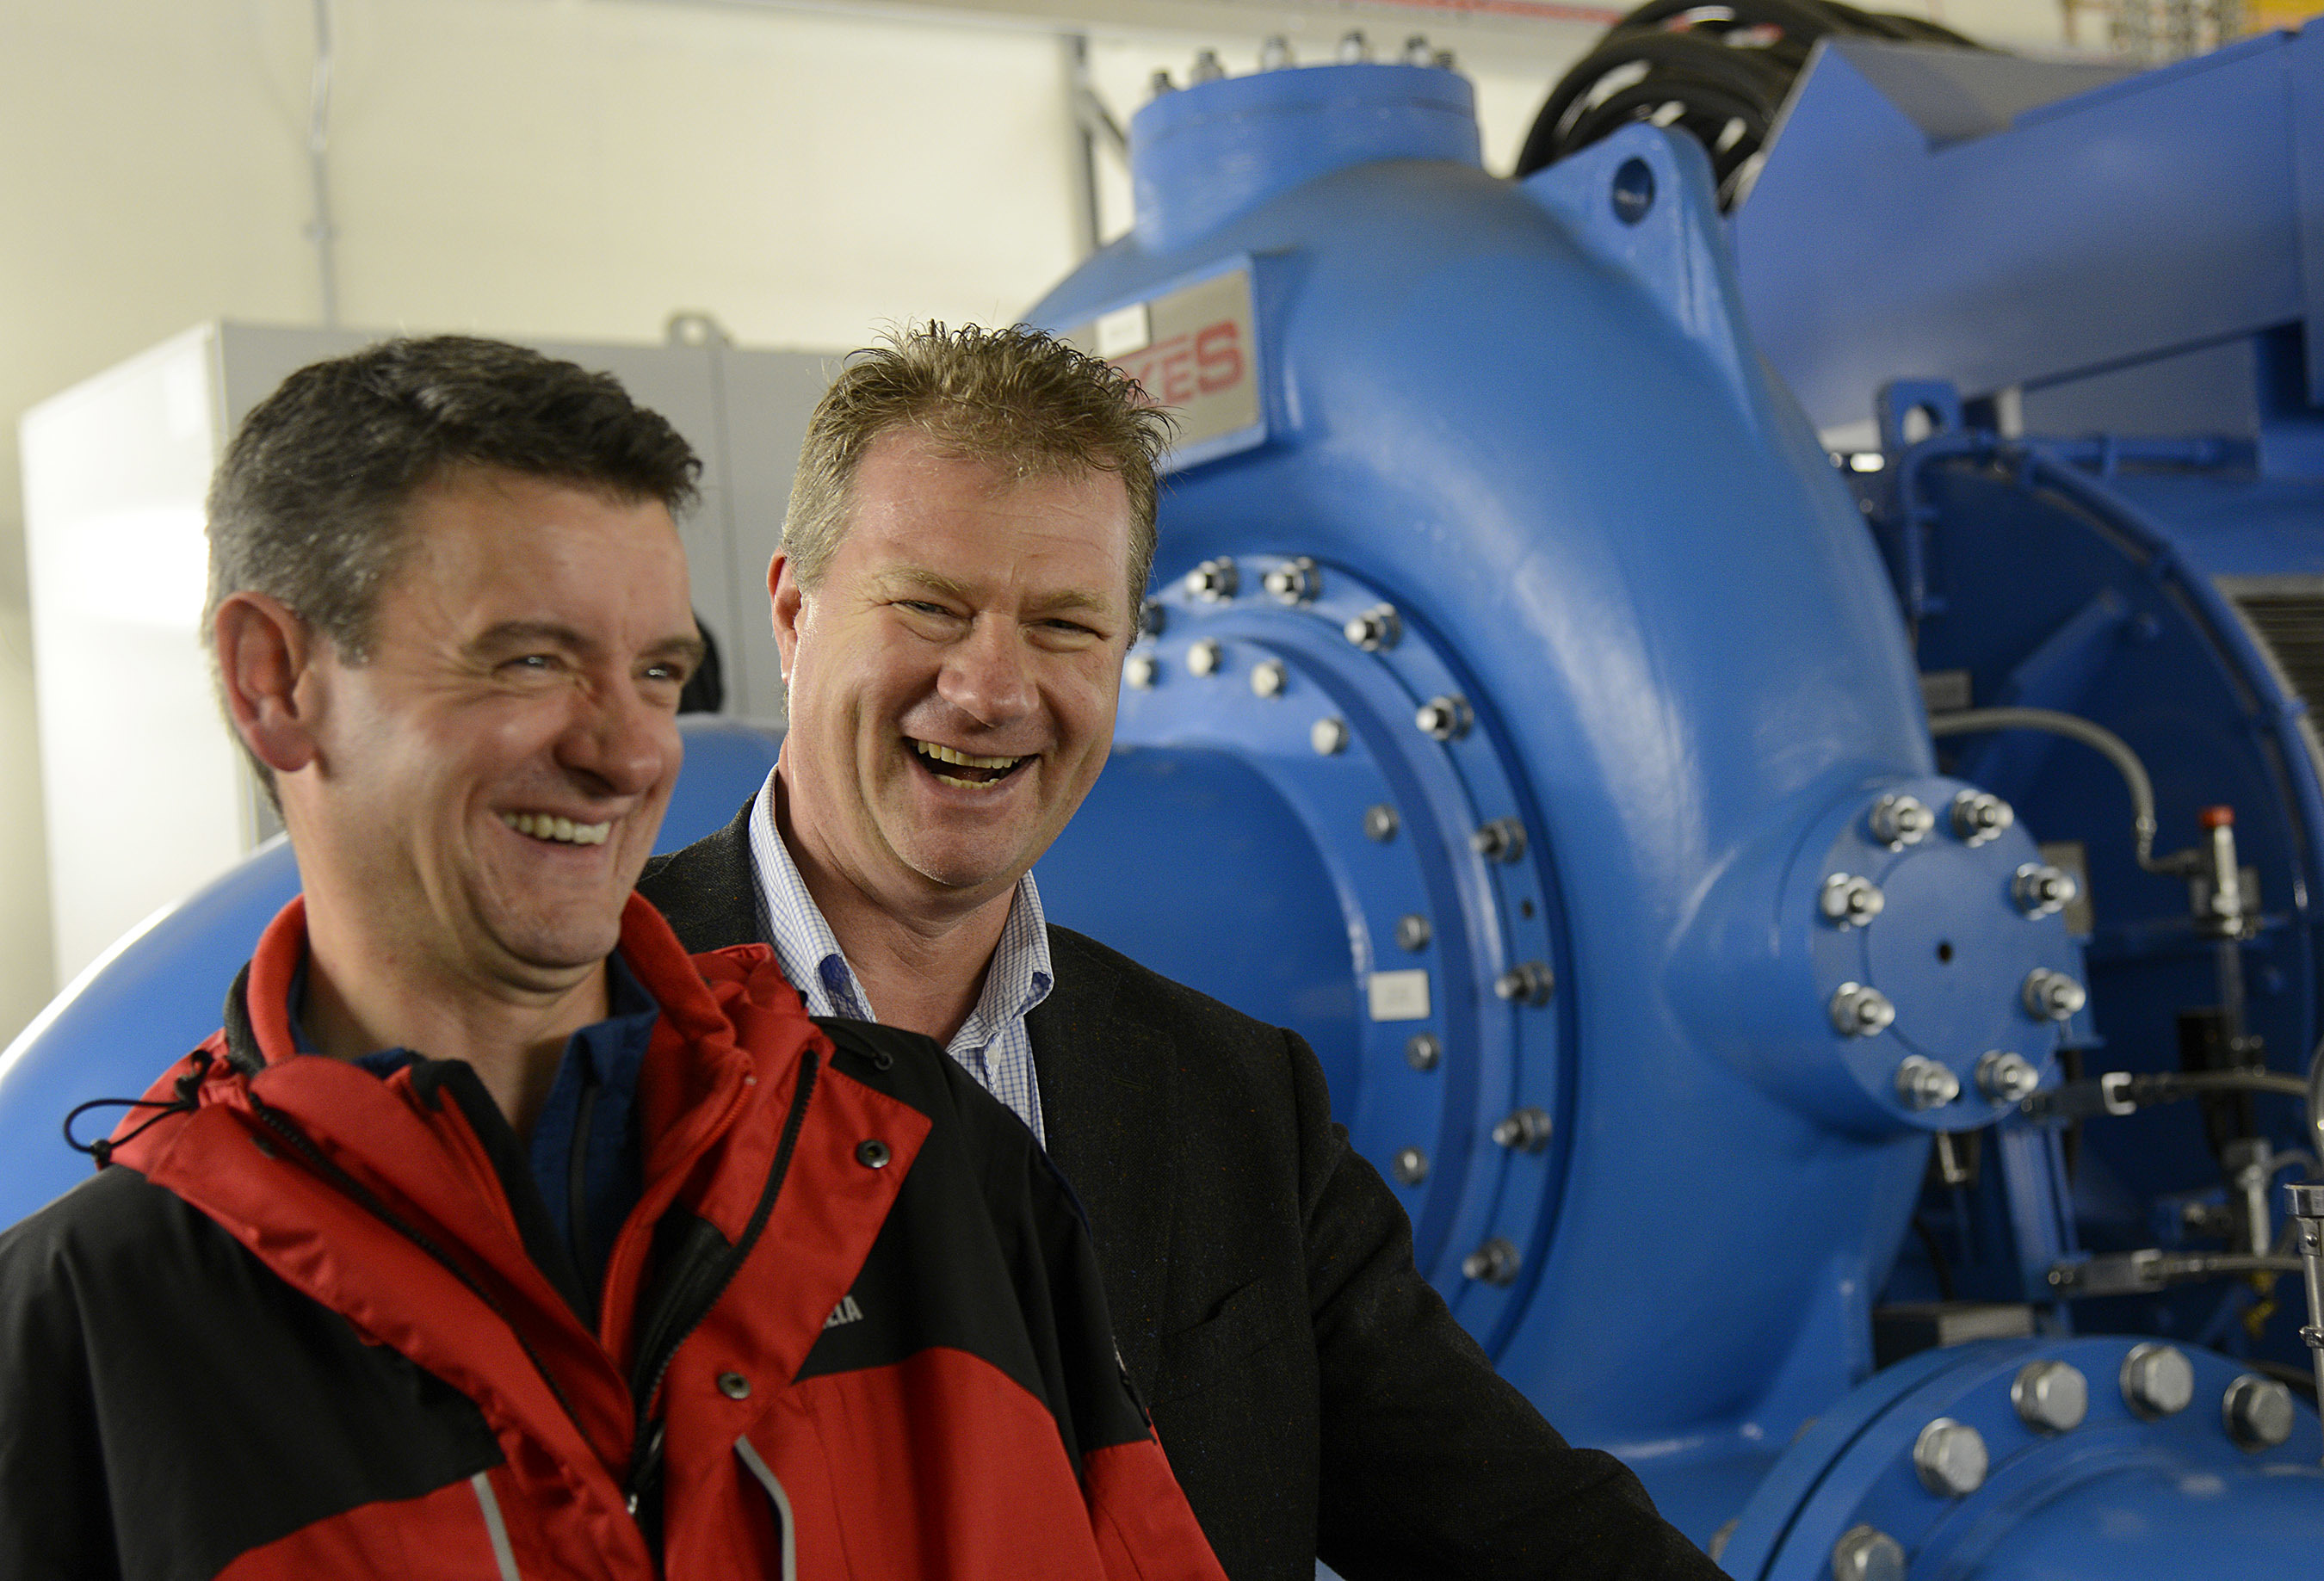 Torridon Mountain Rescue Team member Richard Cockburn (left) with Hans Bunting, Chief Operating Officer, Renewables innogy SE in the Grudie Hydro Electric scheme power station.